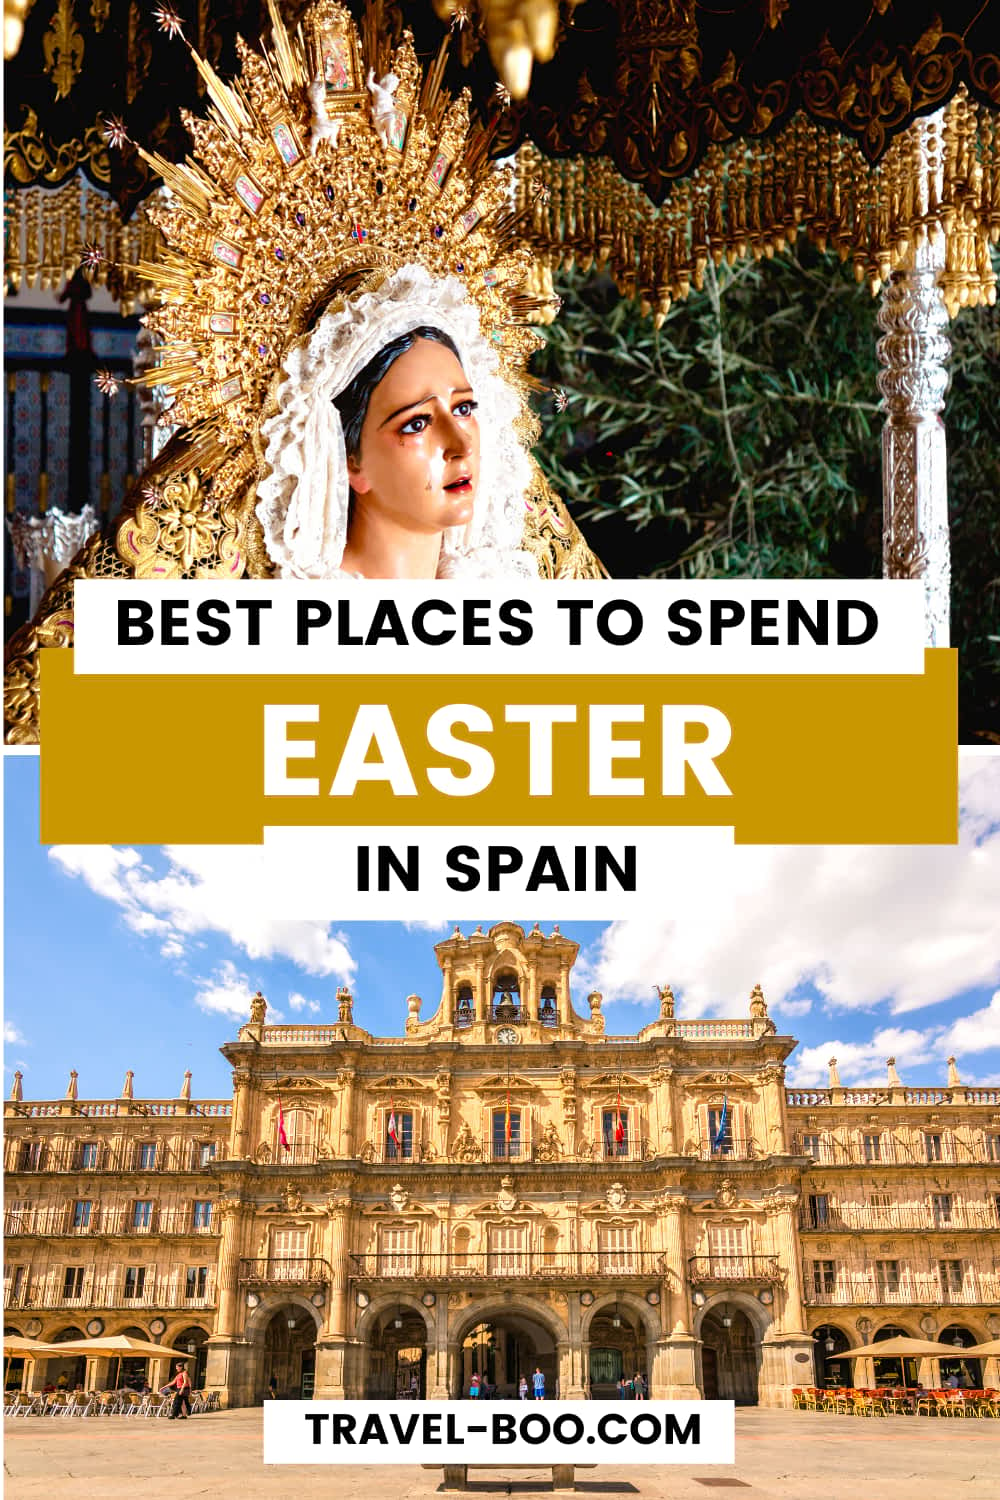 Best Places to spend Easter in Spain. #spaintravel #spaintravelguide #spain | Spain Travel | Spain Travel Guide | Spain Travel Itinerary | Spain Travel Things To Do | Europe Travel | Europe Travel Guide | European Travel